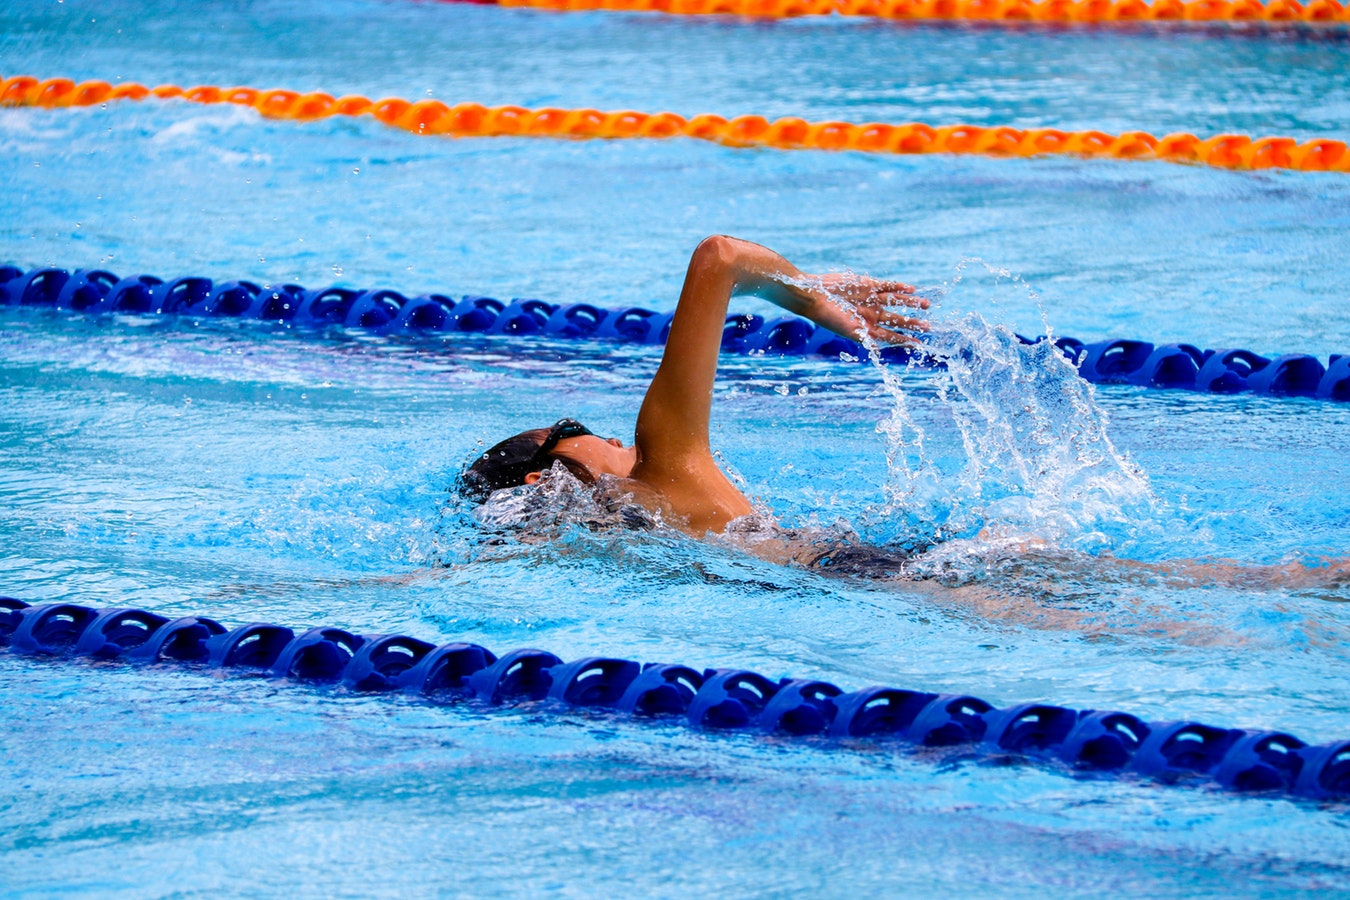 A woman swimming laps in the pool. Swimming is a great activity for people with mobility problems.